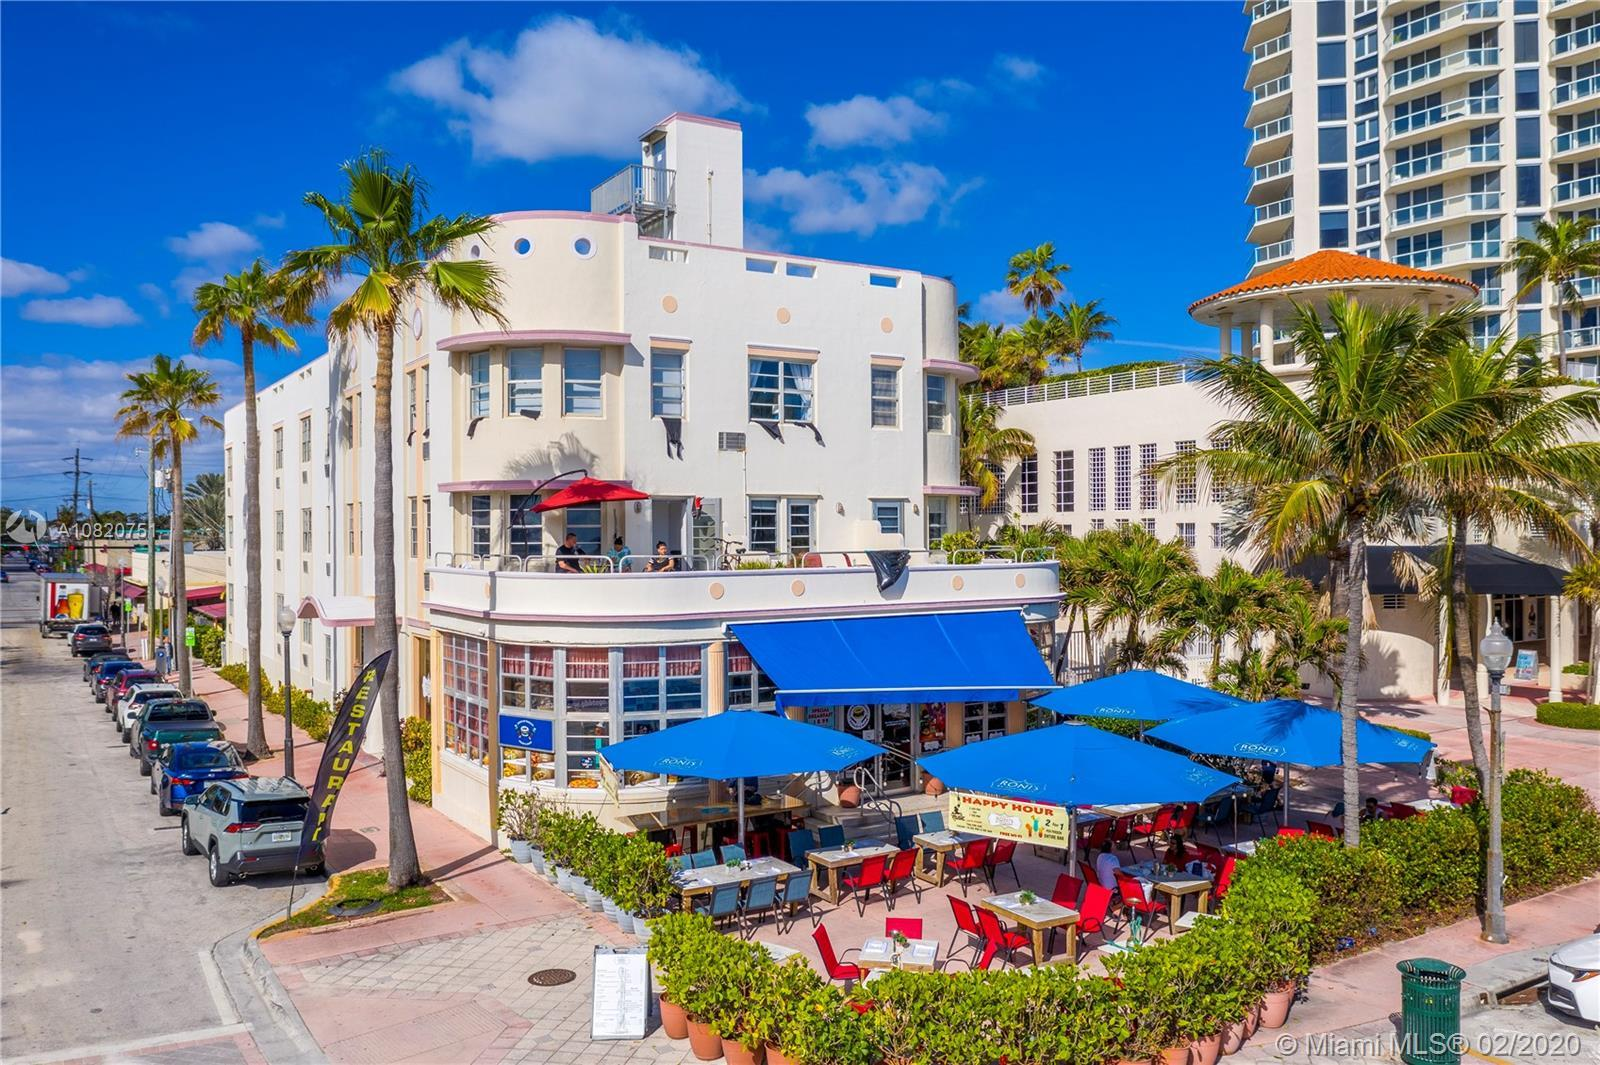 Enjoy living right next to the pristine sands of Miami Beach in this charming oceanfront studio avai